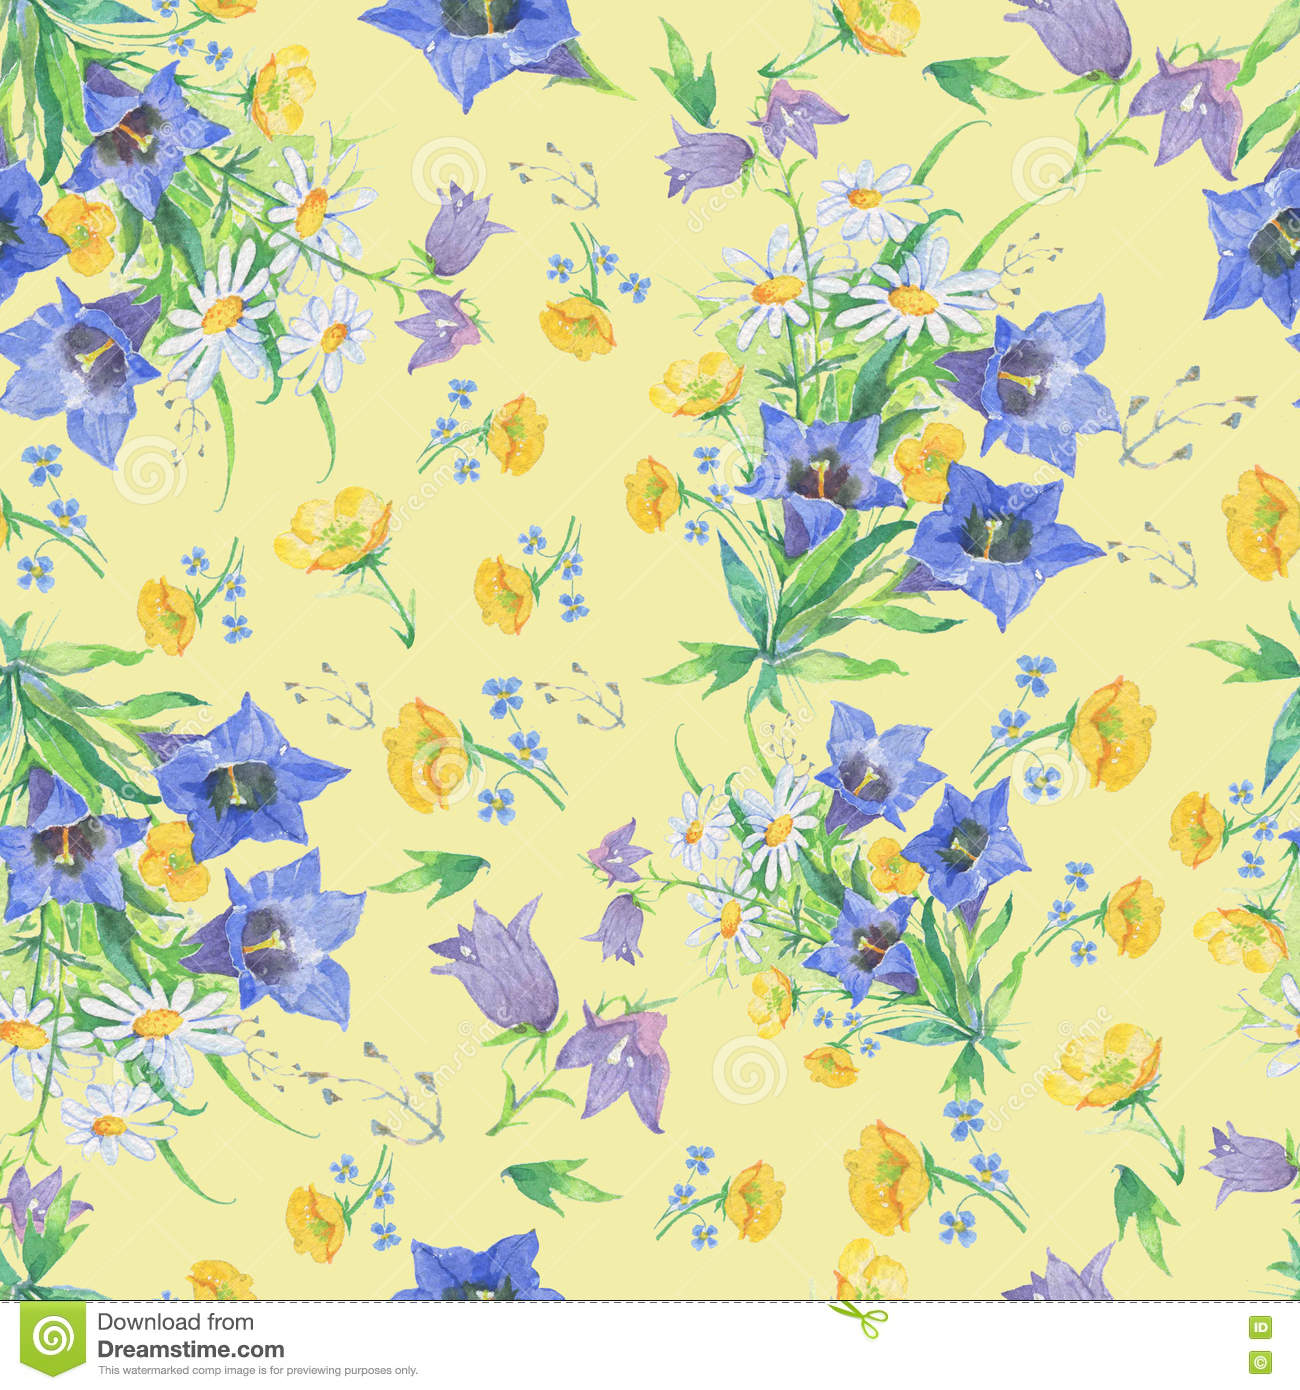 Seamless pattern of flowers on a yellow background